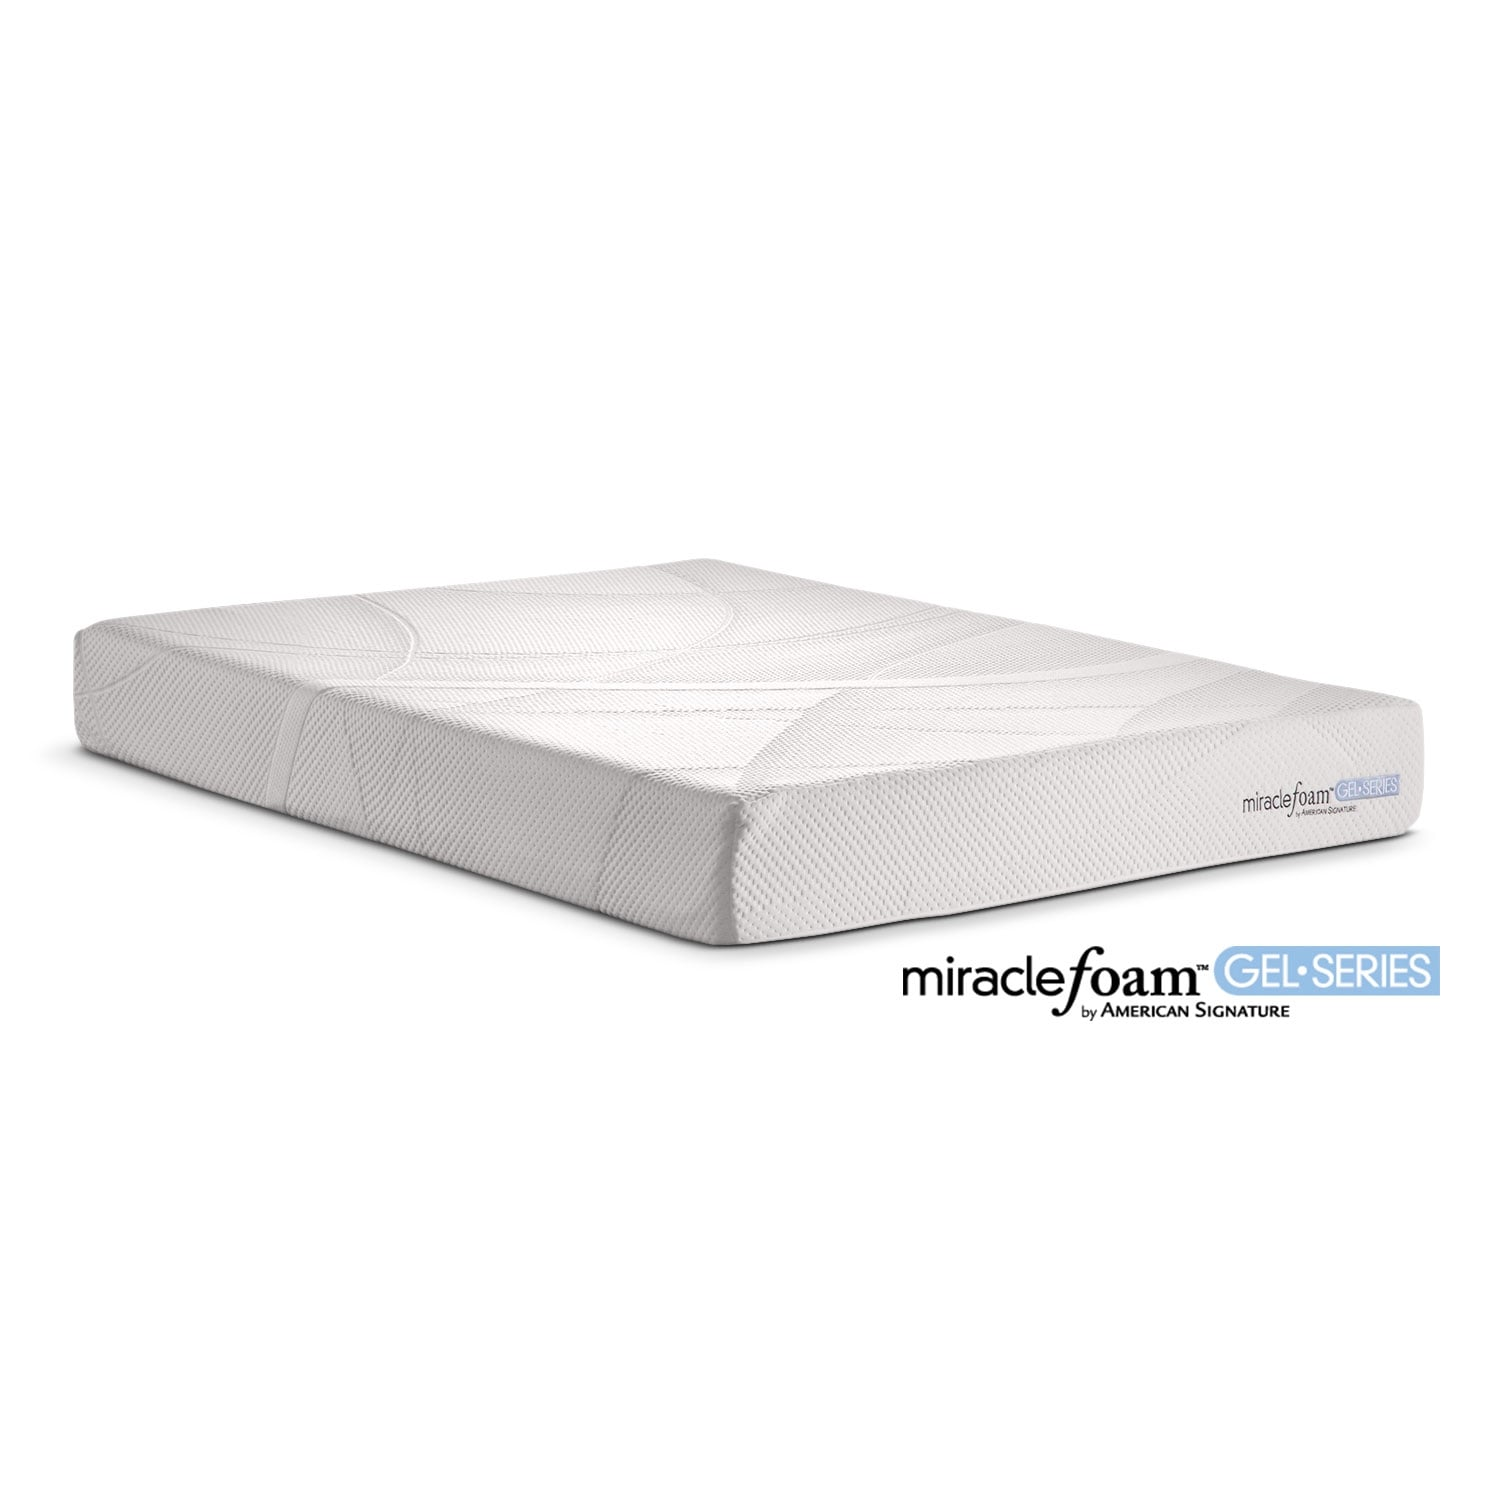 Mattresses and Bedding - Rejuvenate II Queen Mattress